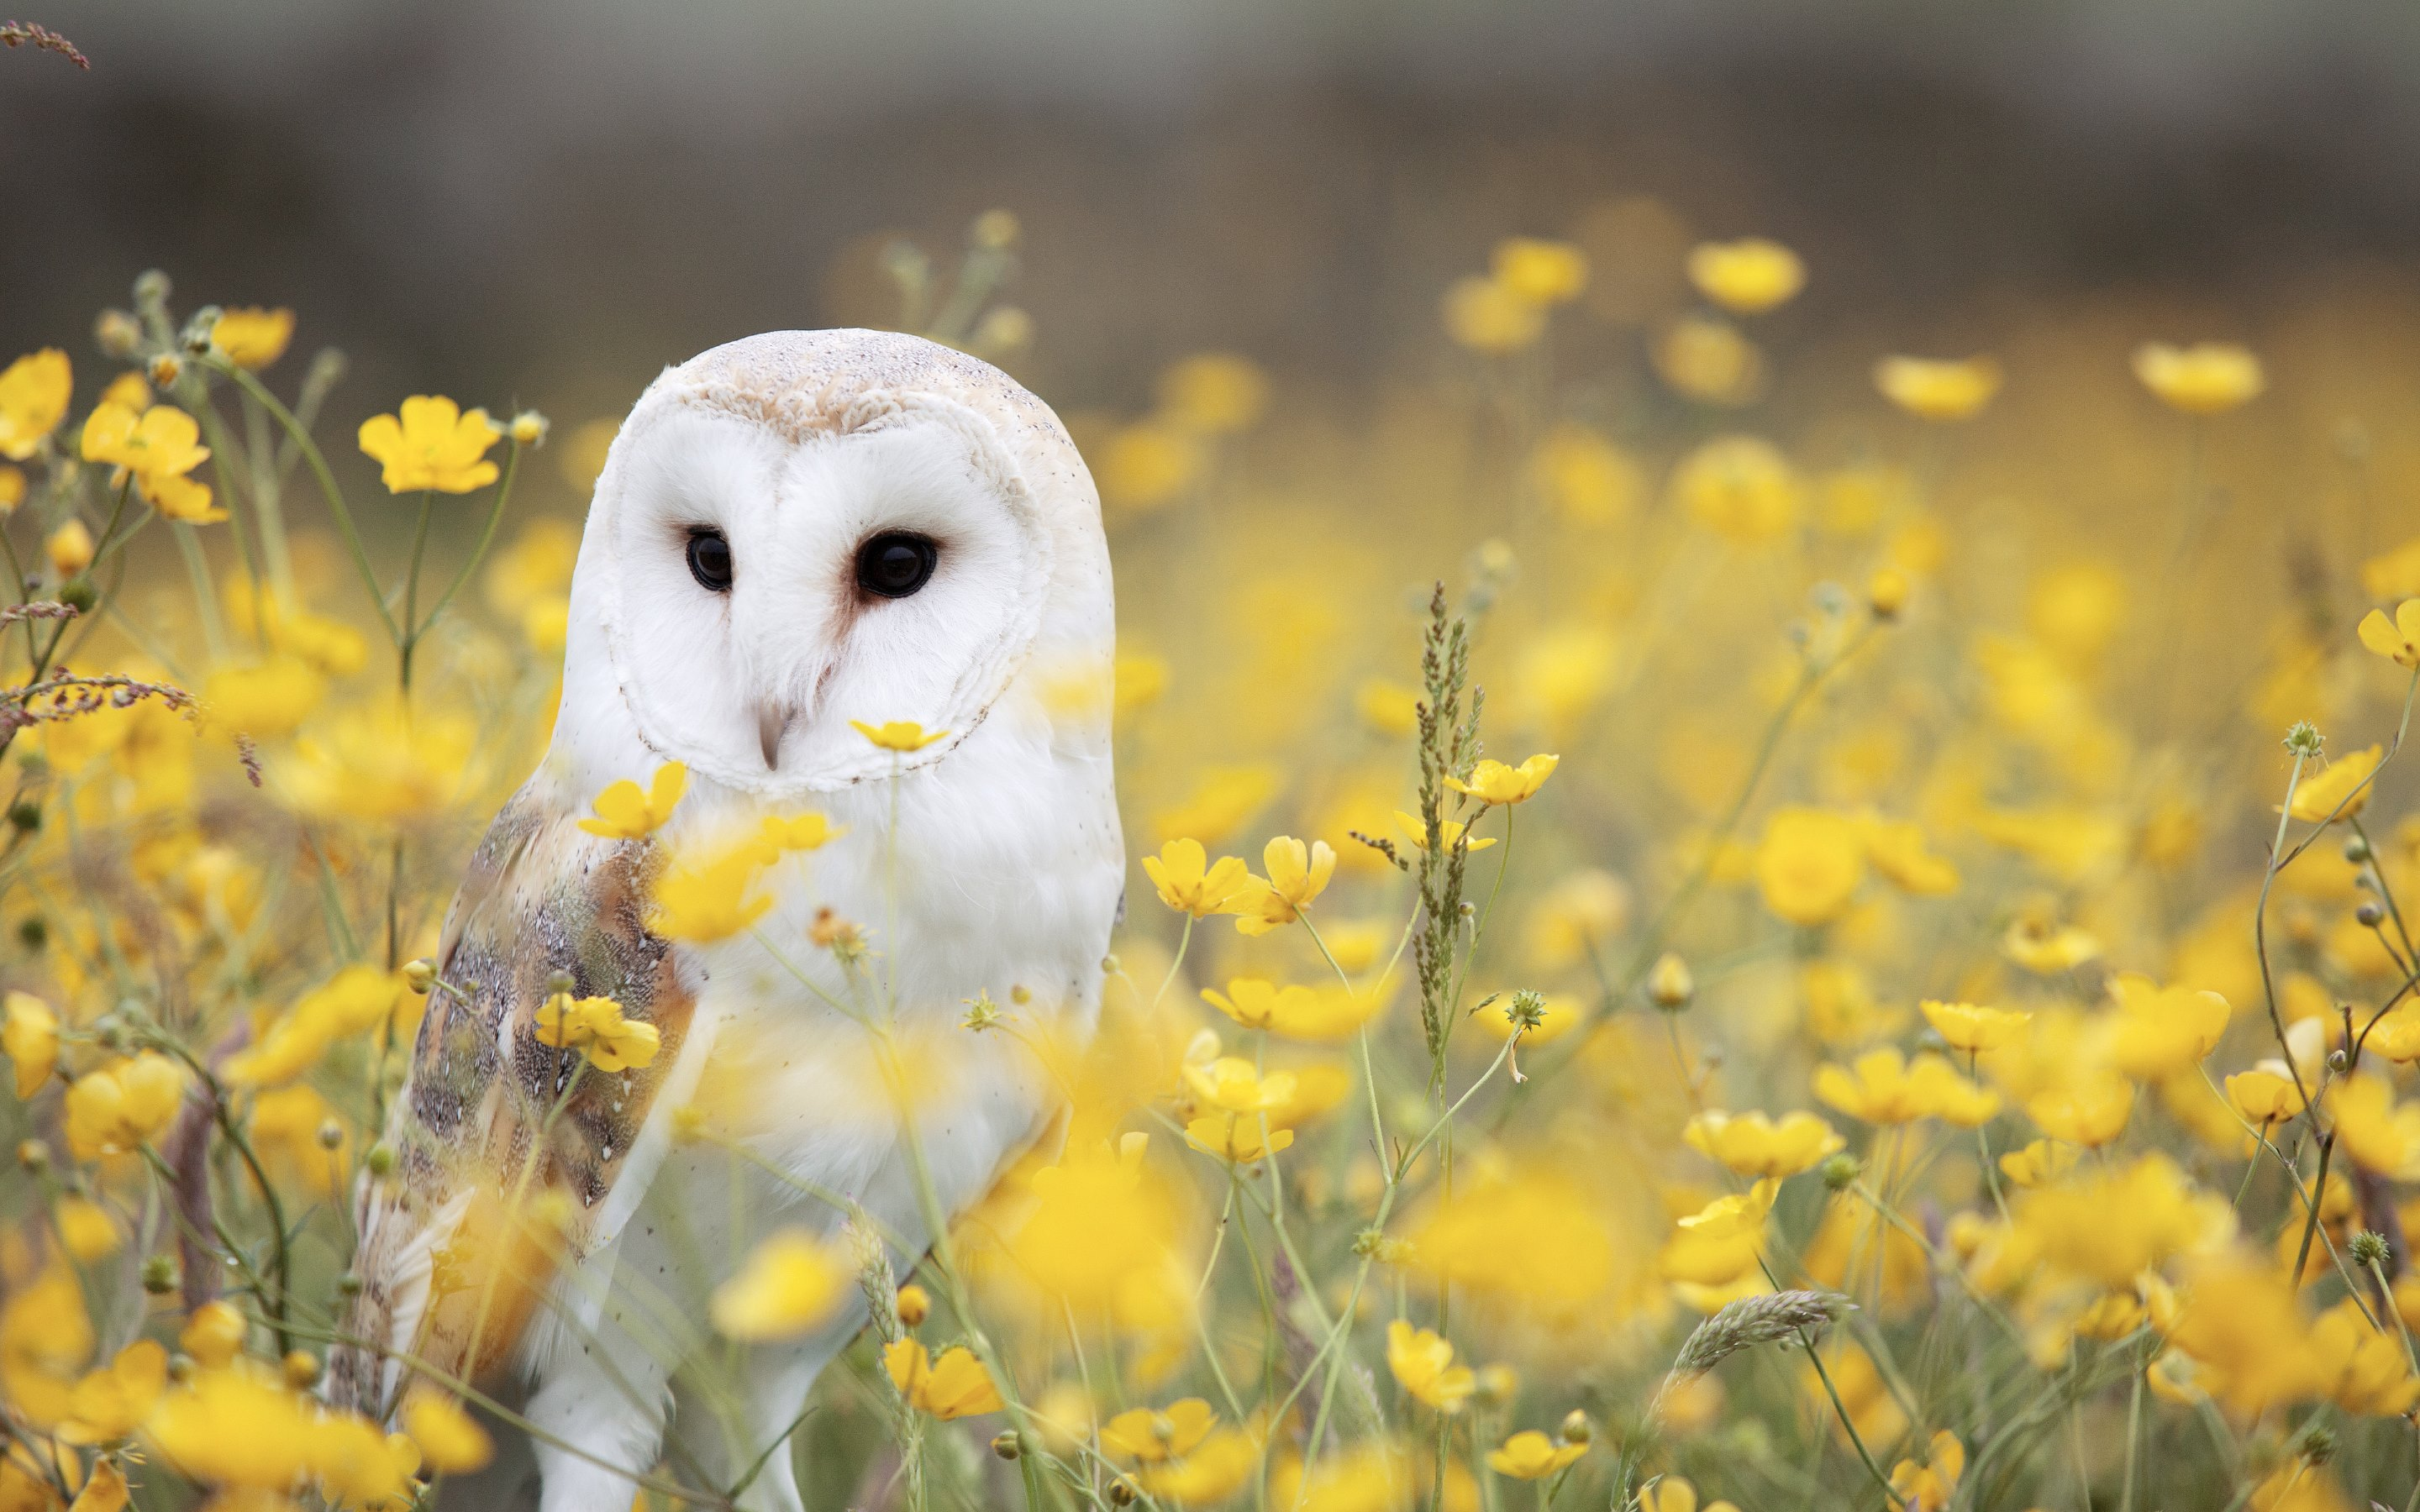 owl wallpaper desktop 7 - photo #11